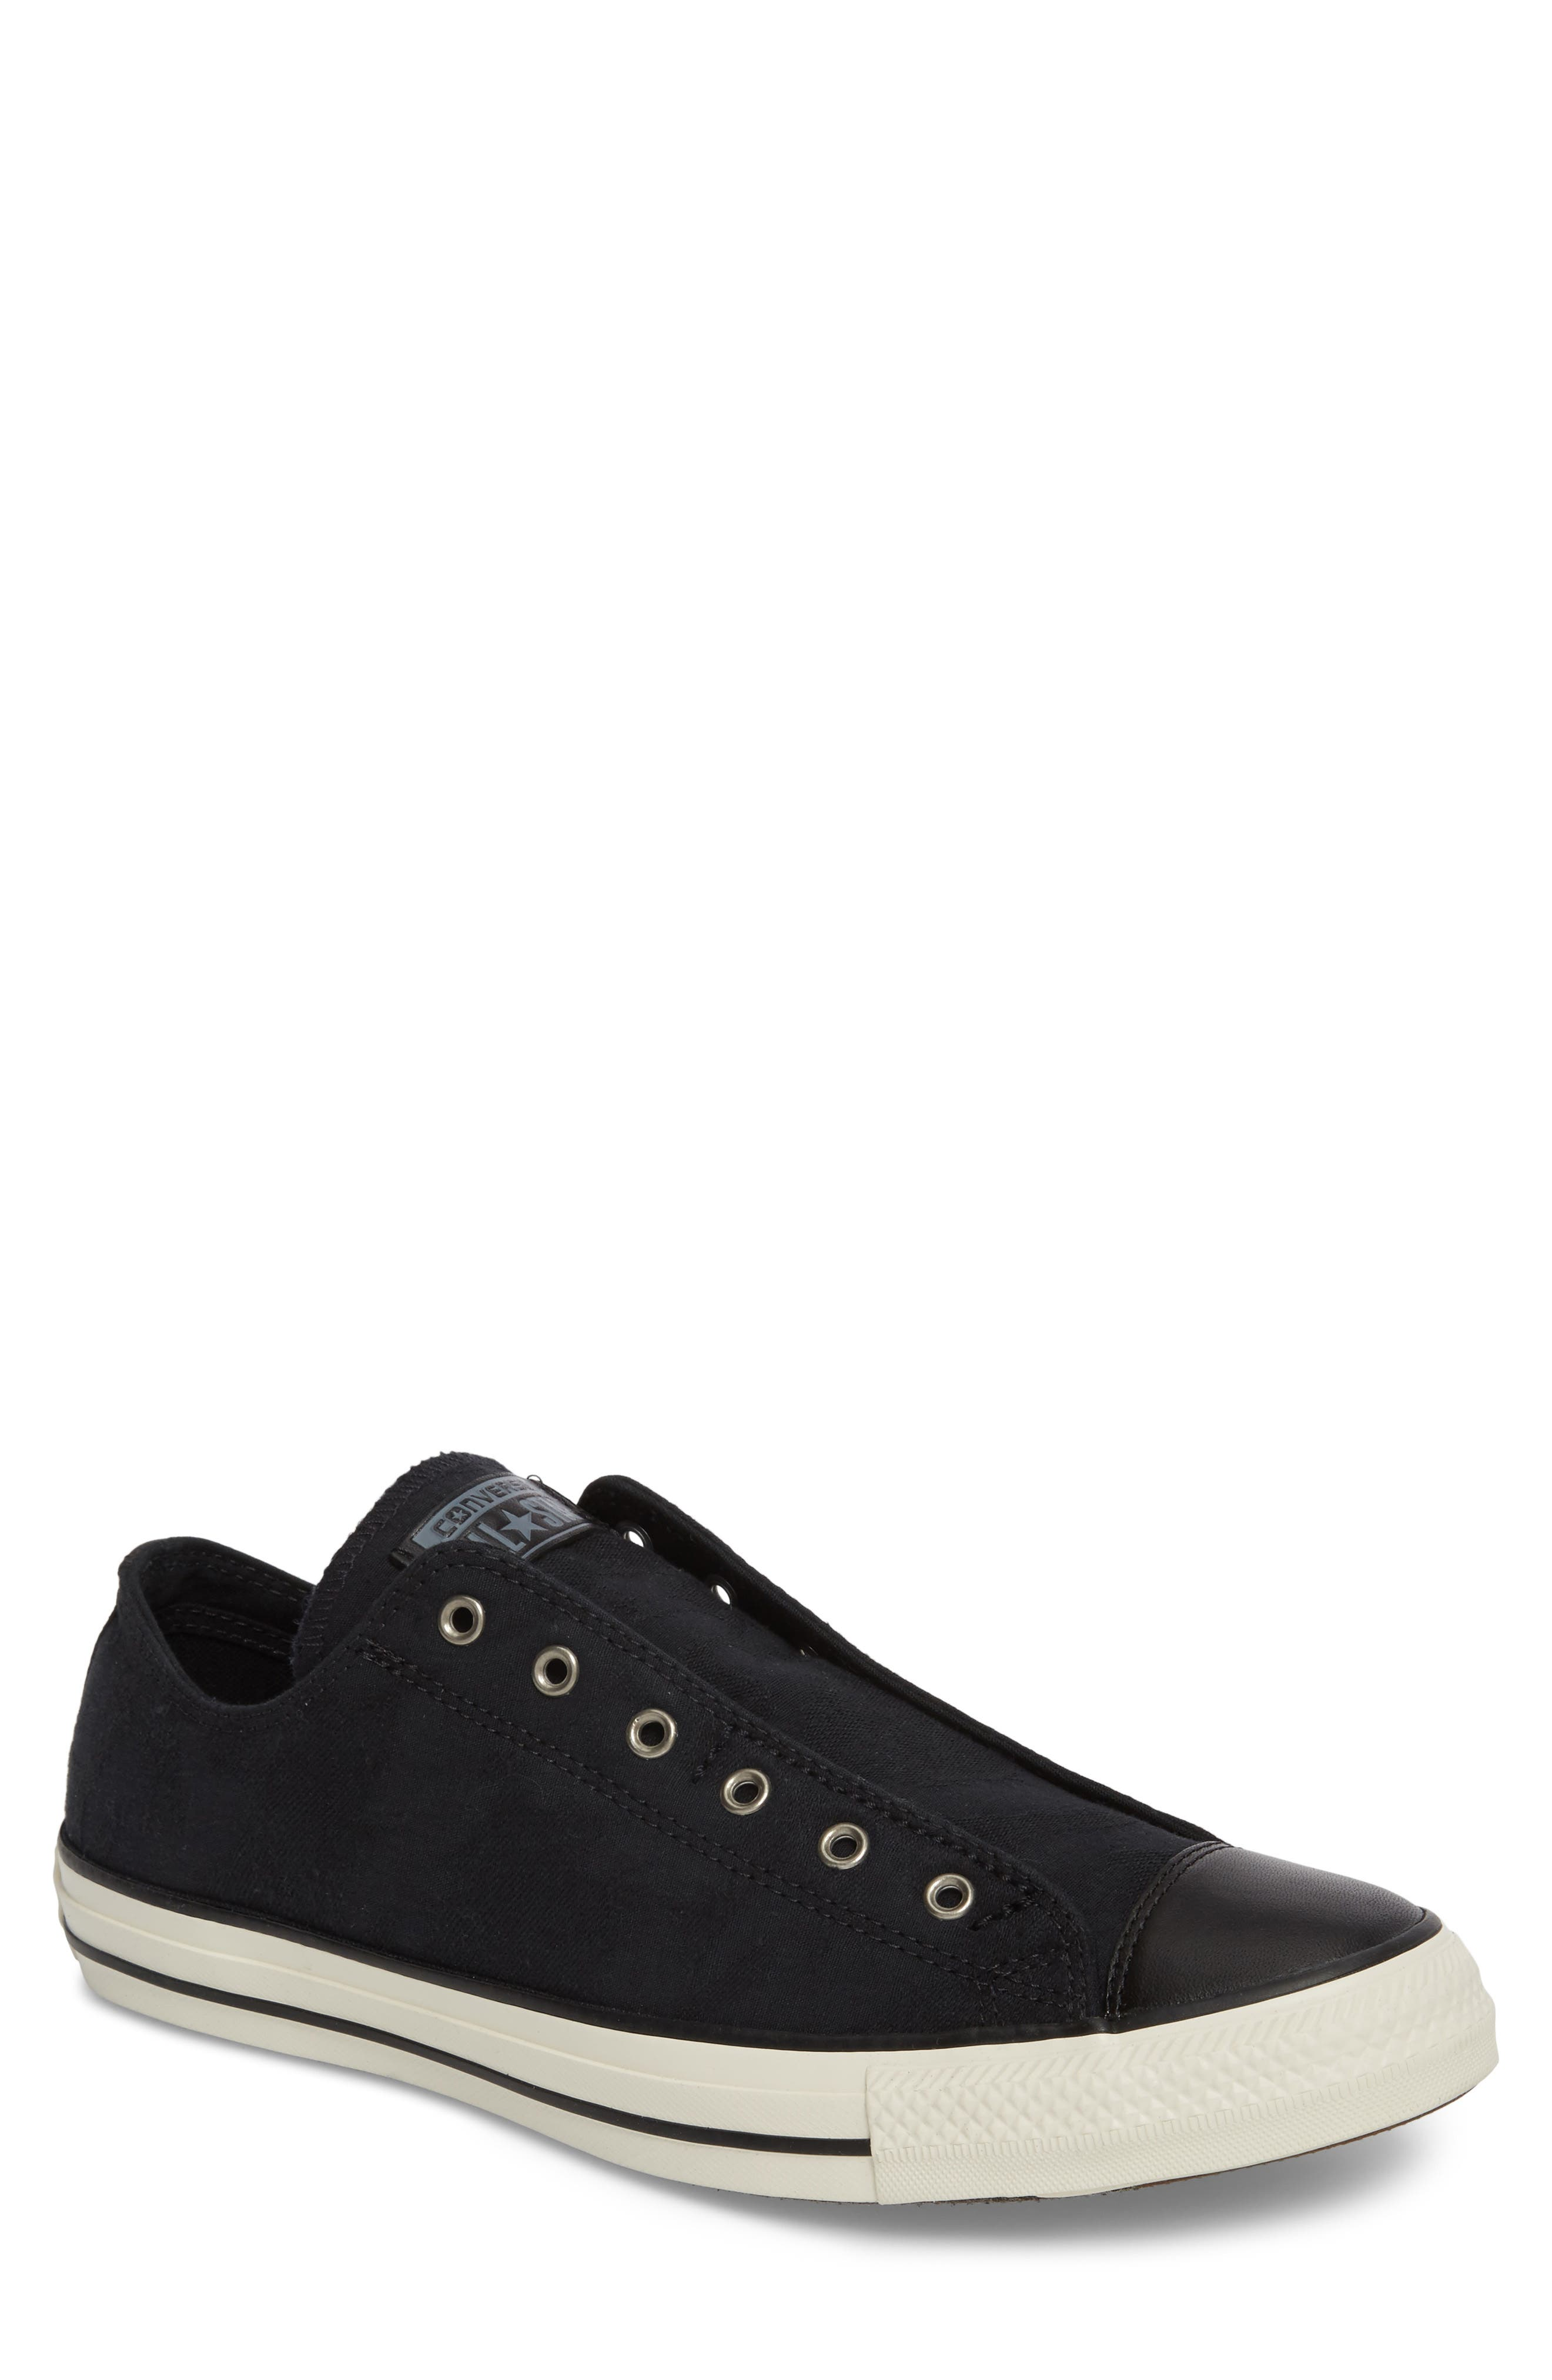 Chuck Taylor<sup>®</sup> All Star<sup>®</sup> Laceless Low Top Sneaker,                         Main,                         color, Black